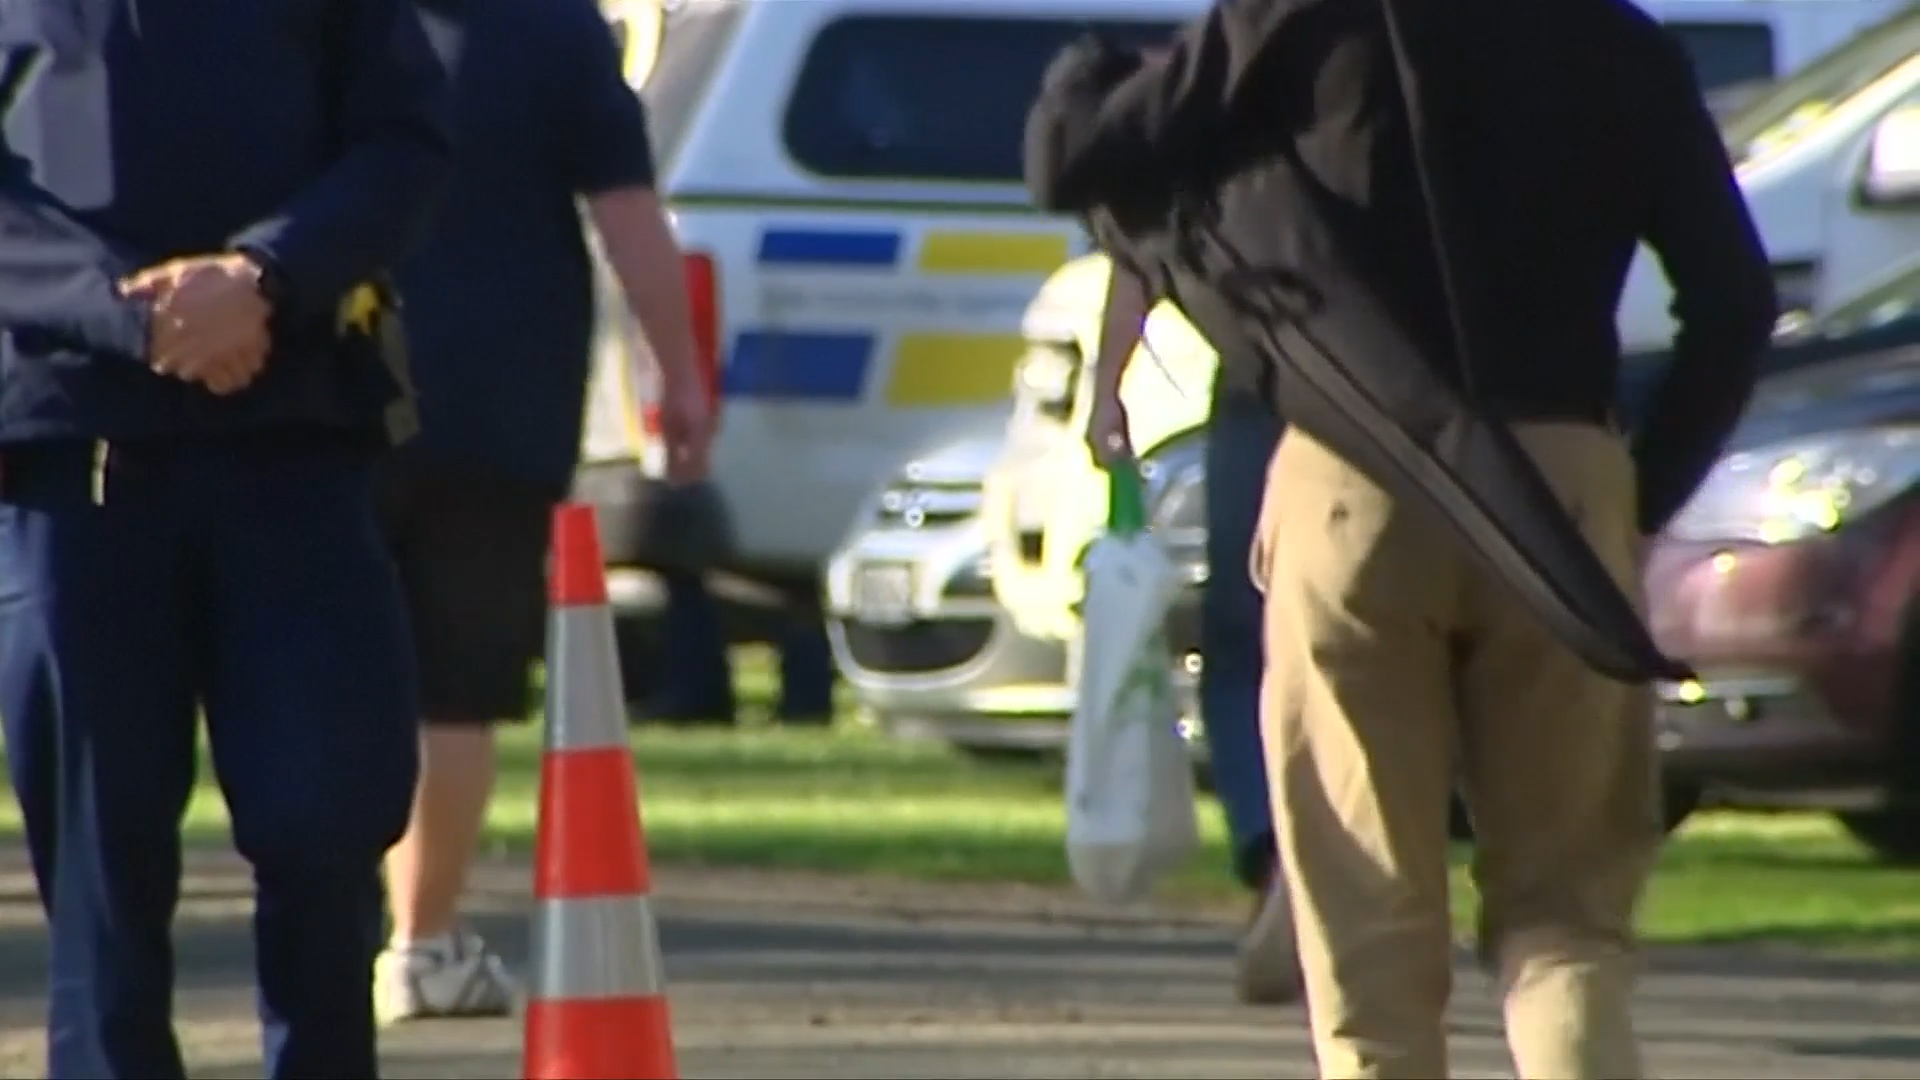 New Zealand Tighens Gun Laws Again After Christchurch Mosque Attack